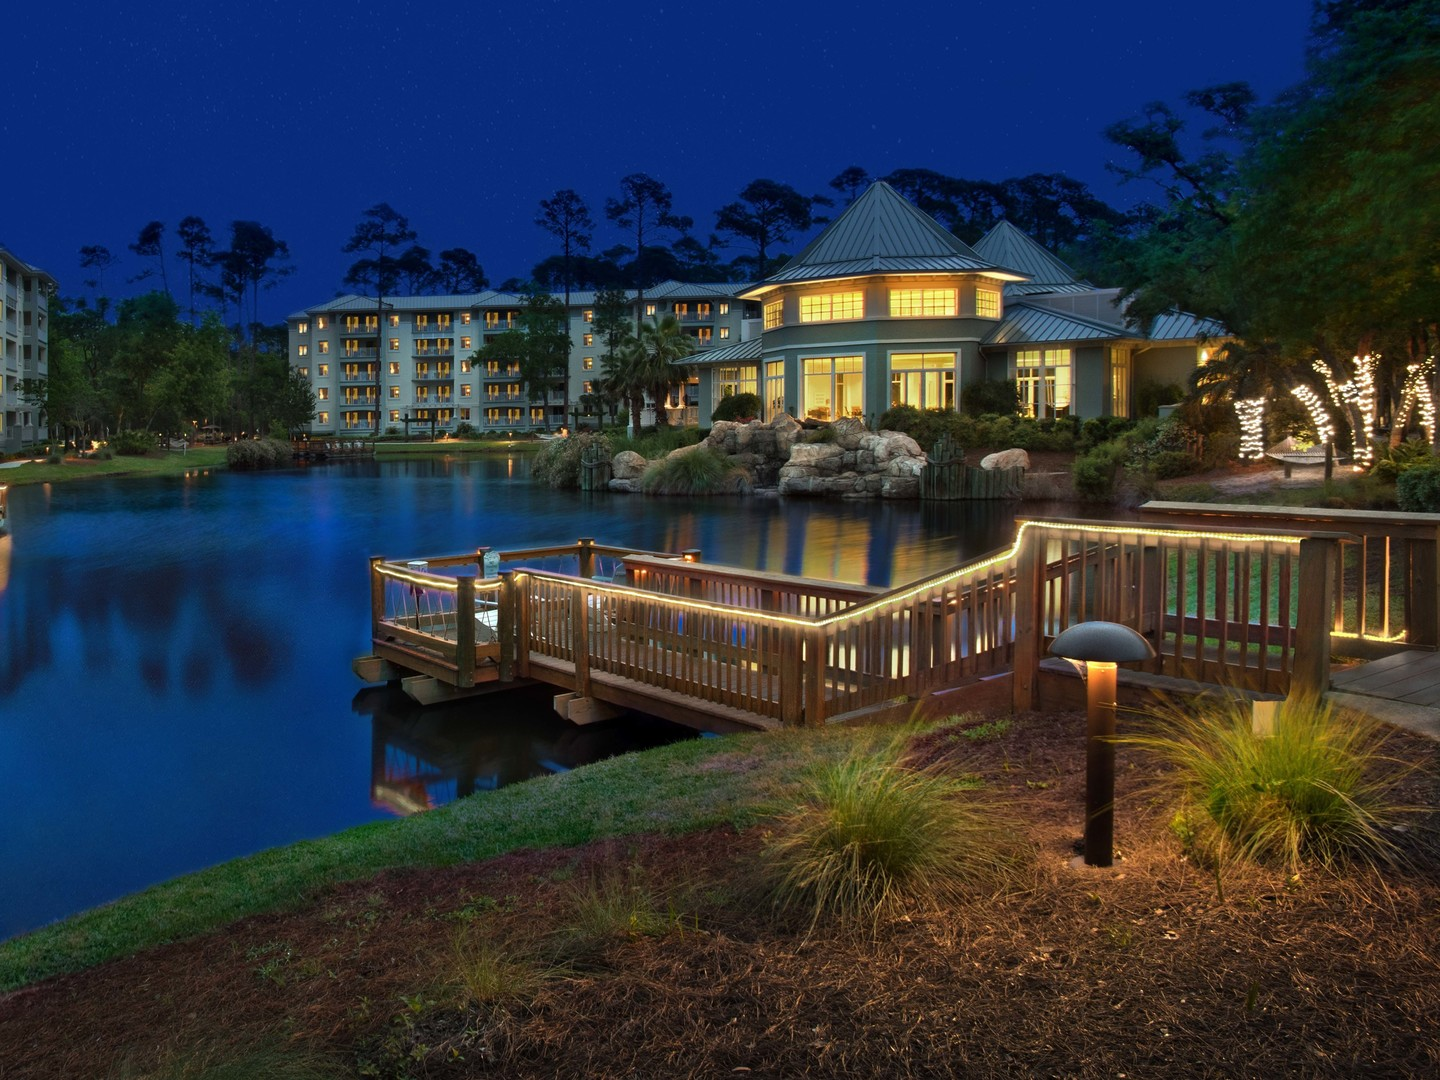 Marriott's SurfWatch<span class='trademark'>®</span> Resort Exterior. Marriott's SurfWatch<span class='trademark'>®</span> is located in Hilton Head Island, South Carolina United States.